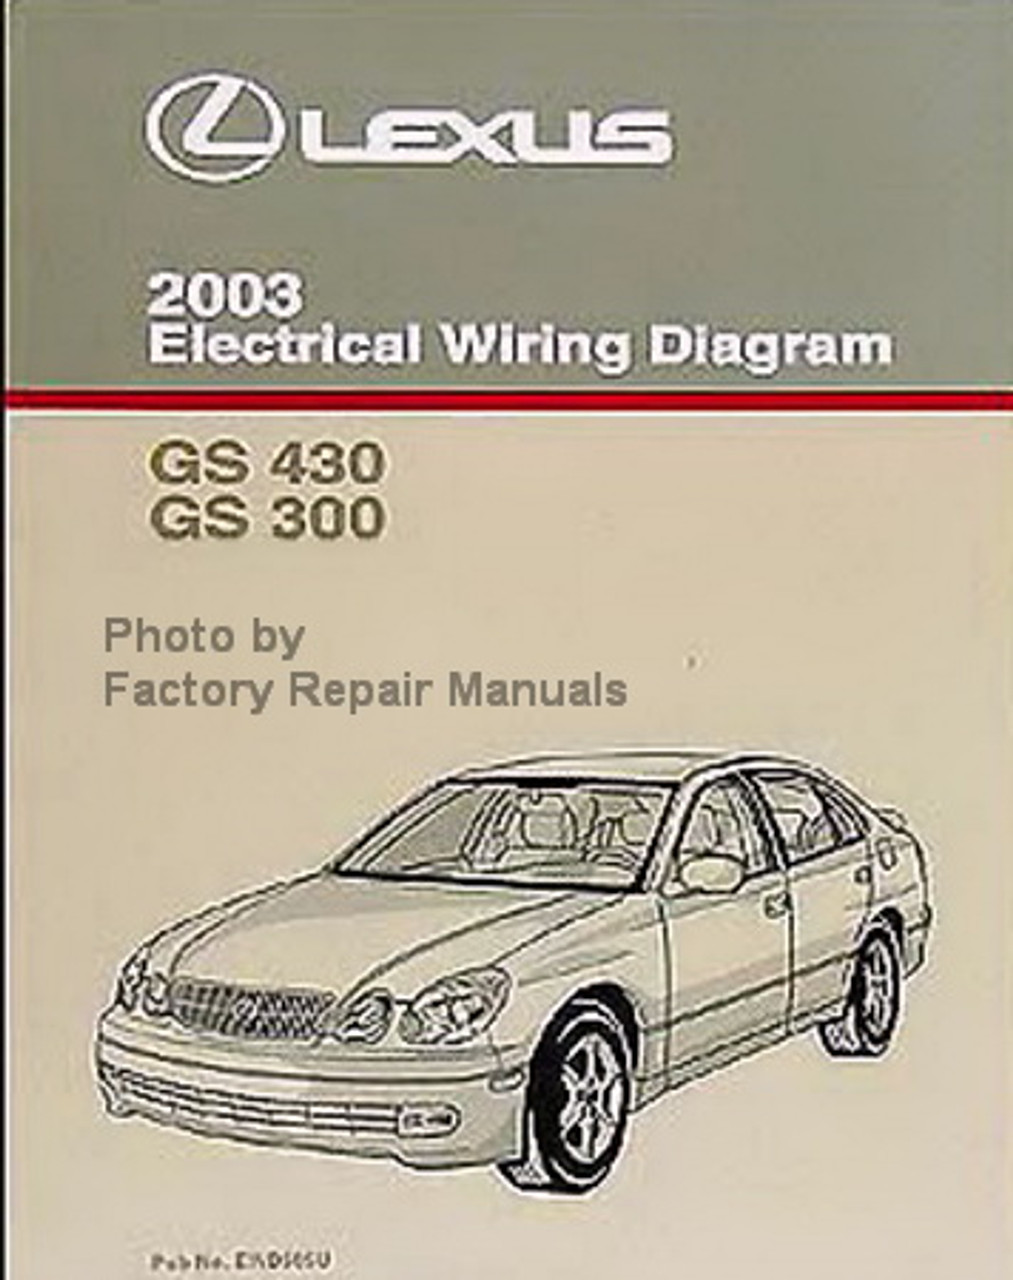 2003 Lexus Gs430 Gs300 Electrical Wiring Diagrams Original Factory Repair Manuals